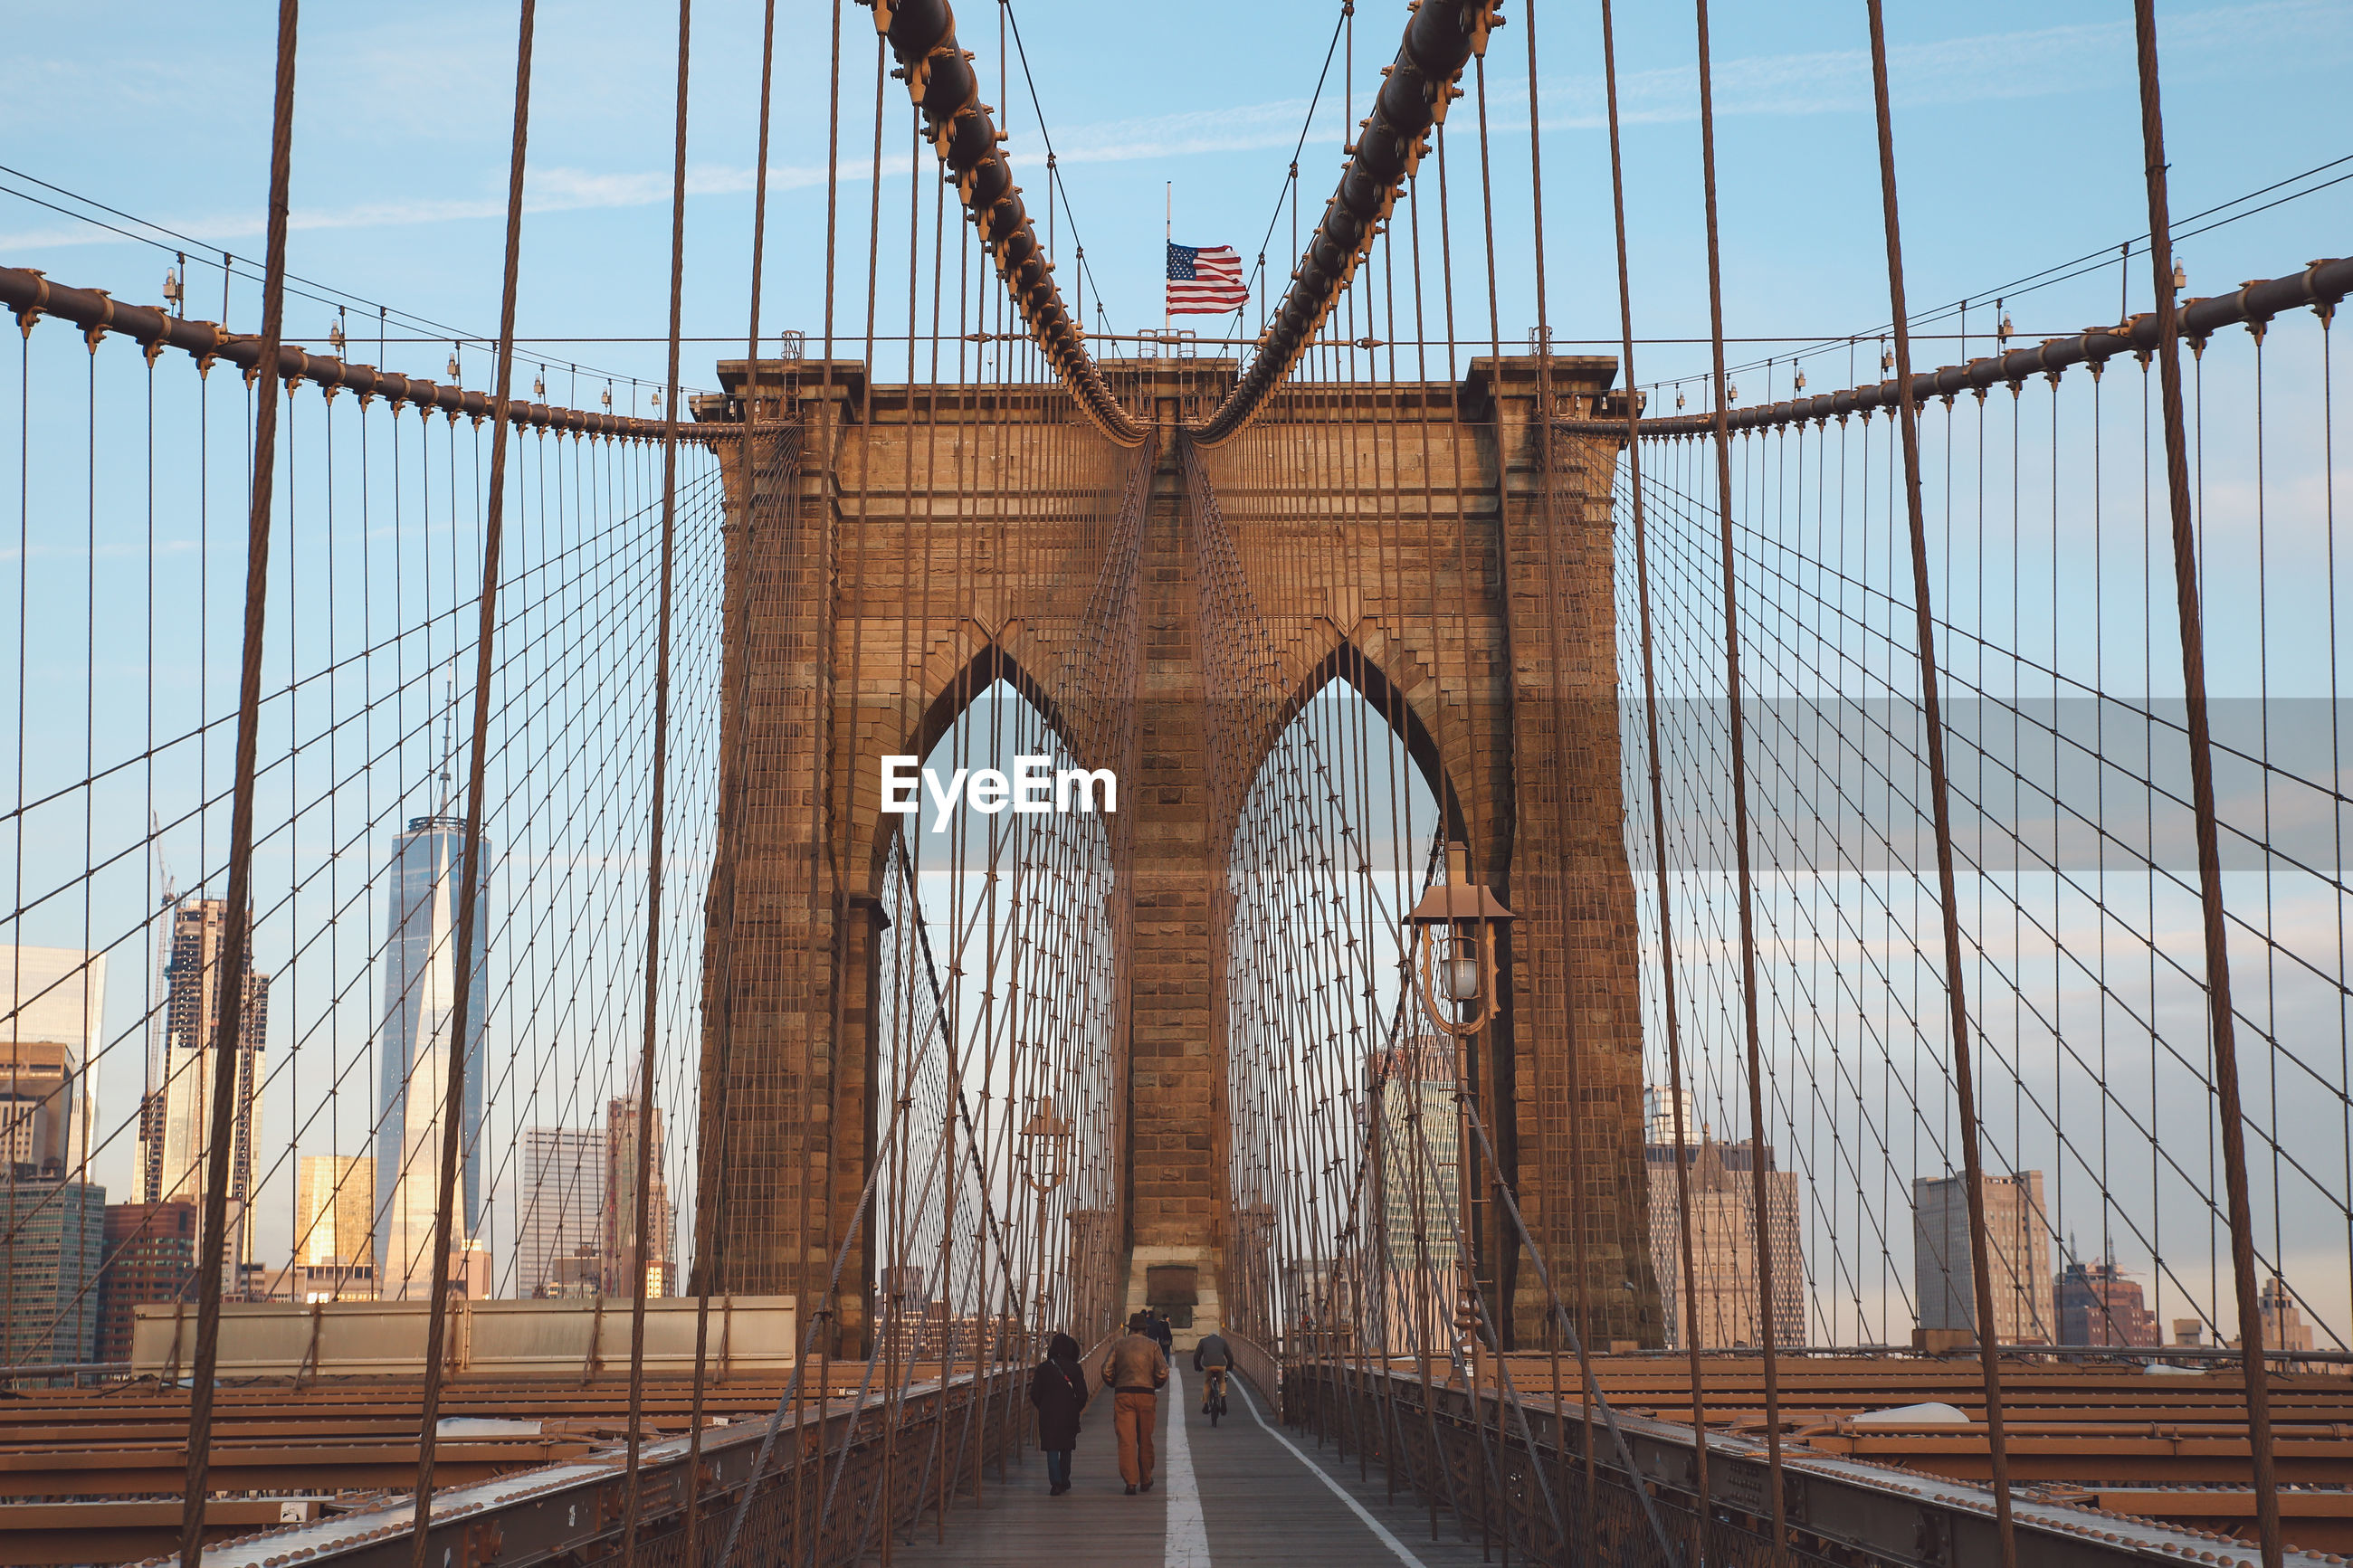 Low angle view of brooklyn bridge in city against sky